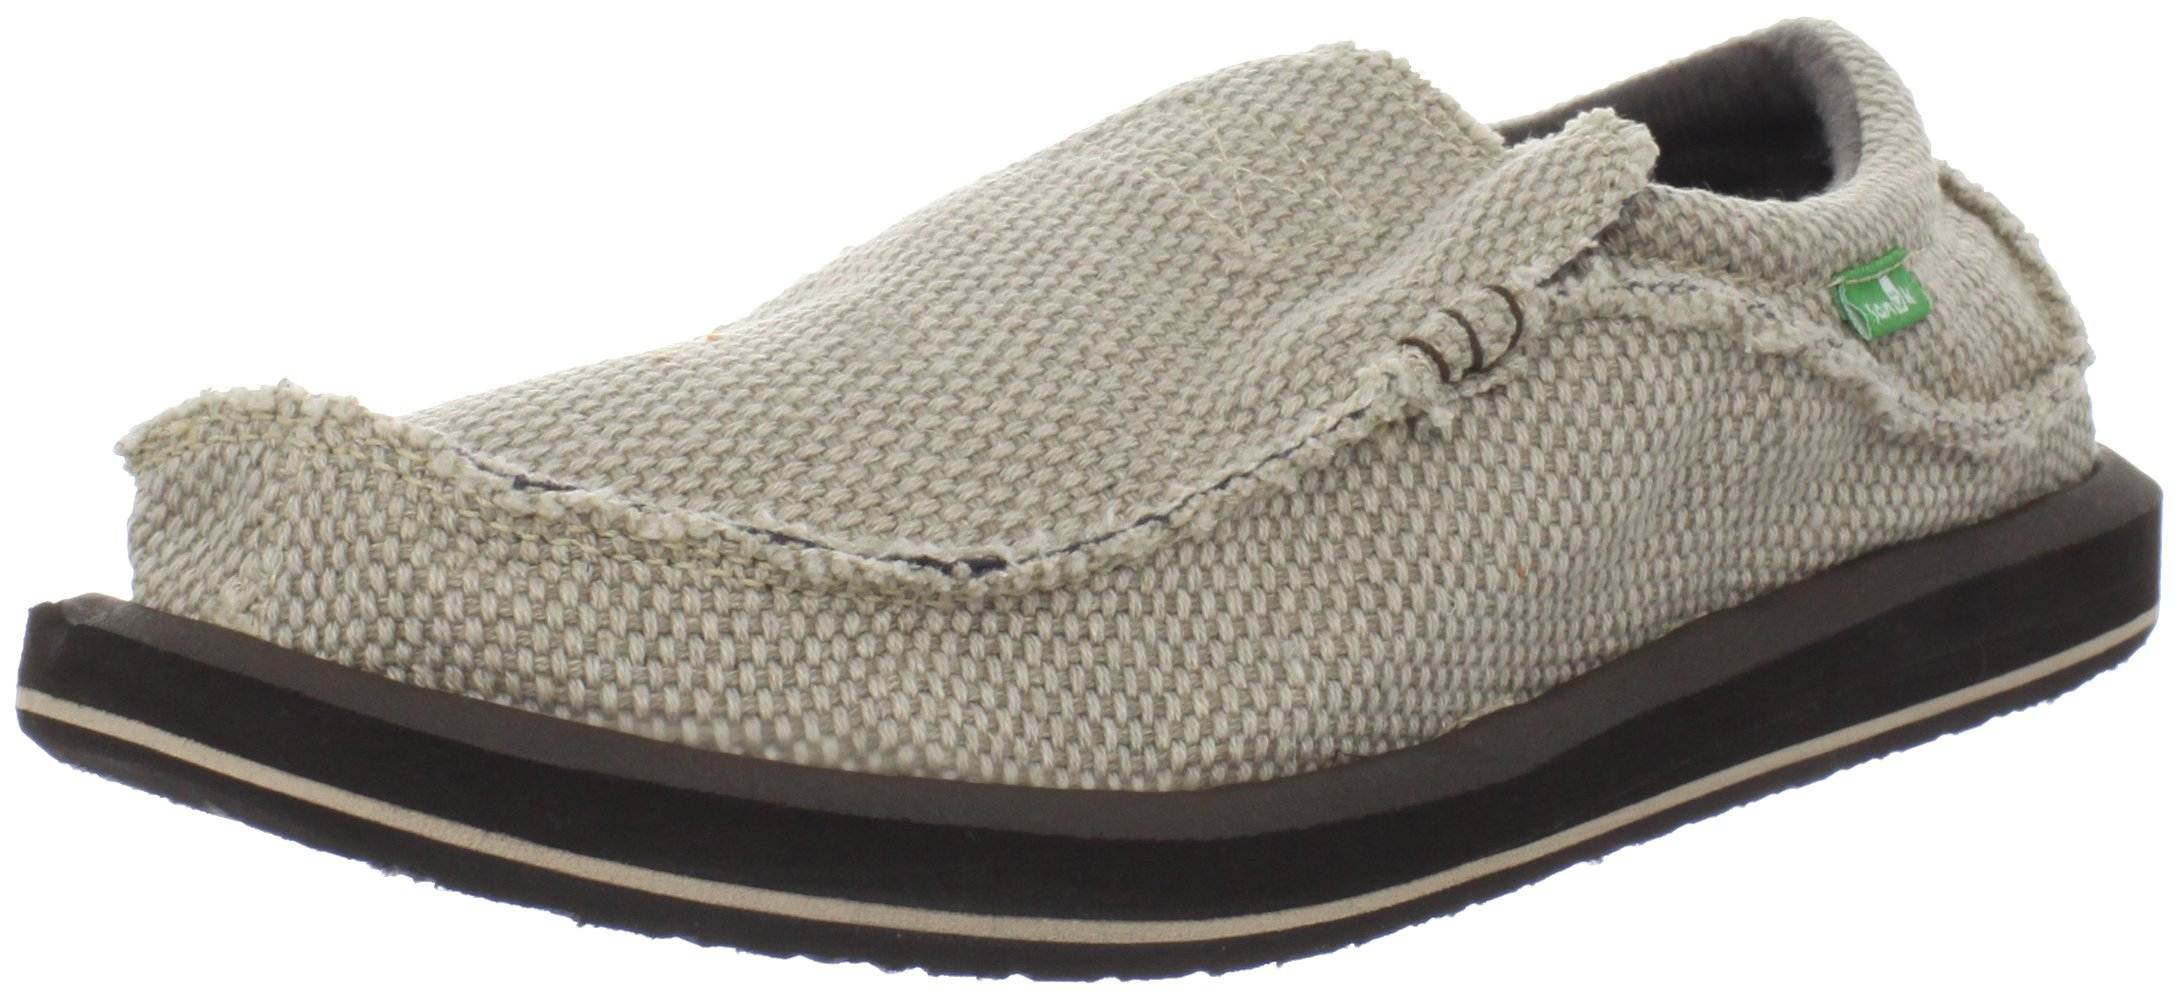 Sanuk Men's Chiba Slip-On, Tan, 11 M US